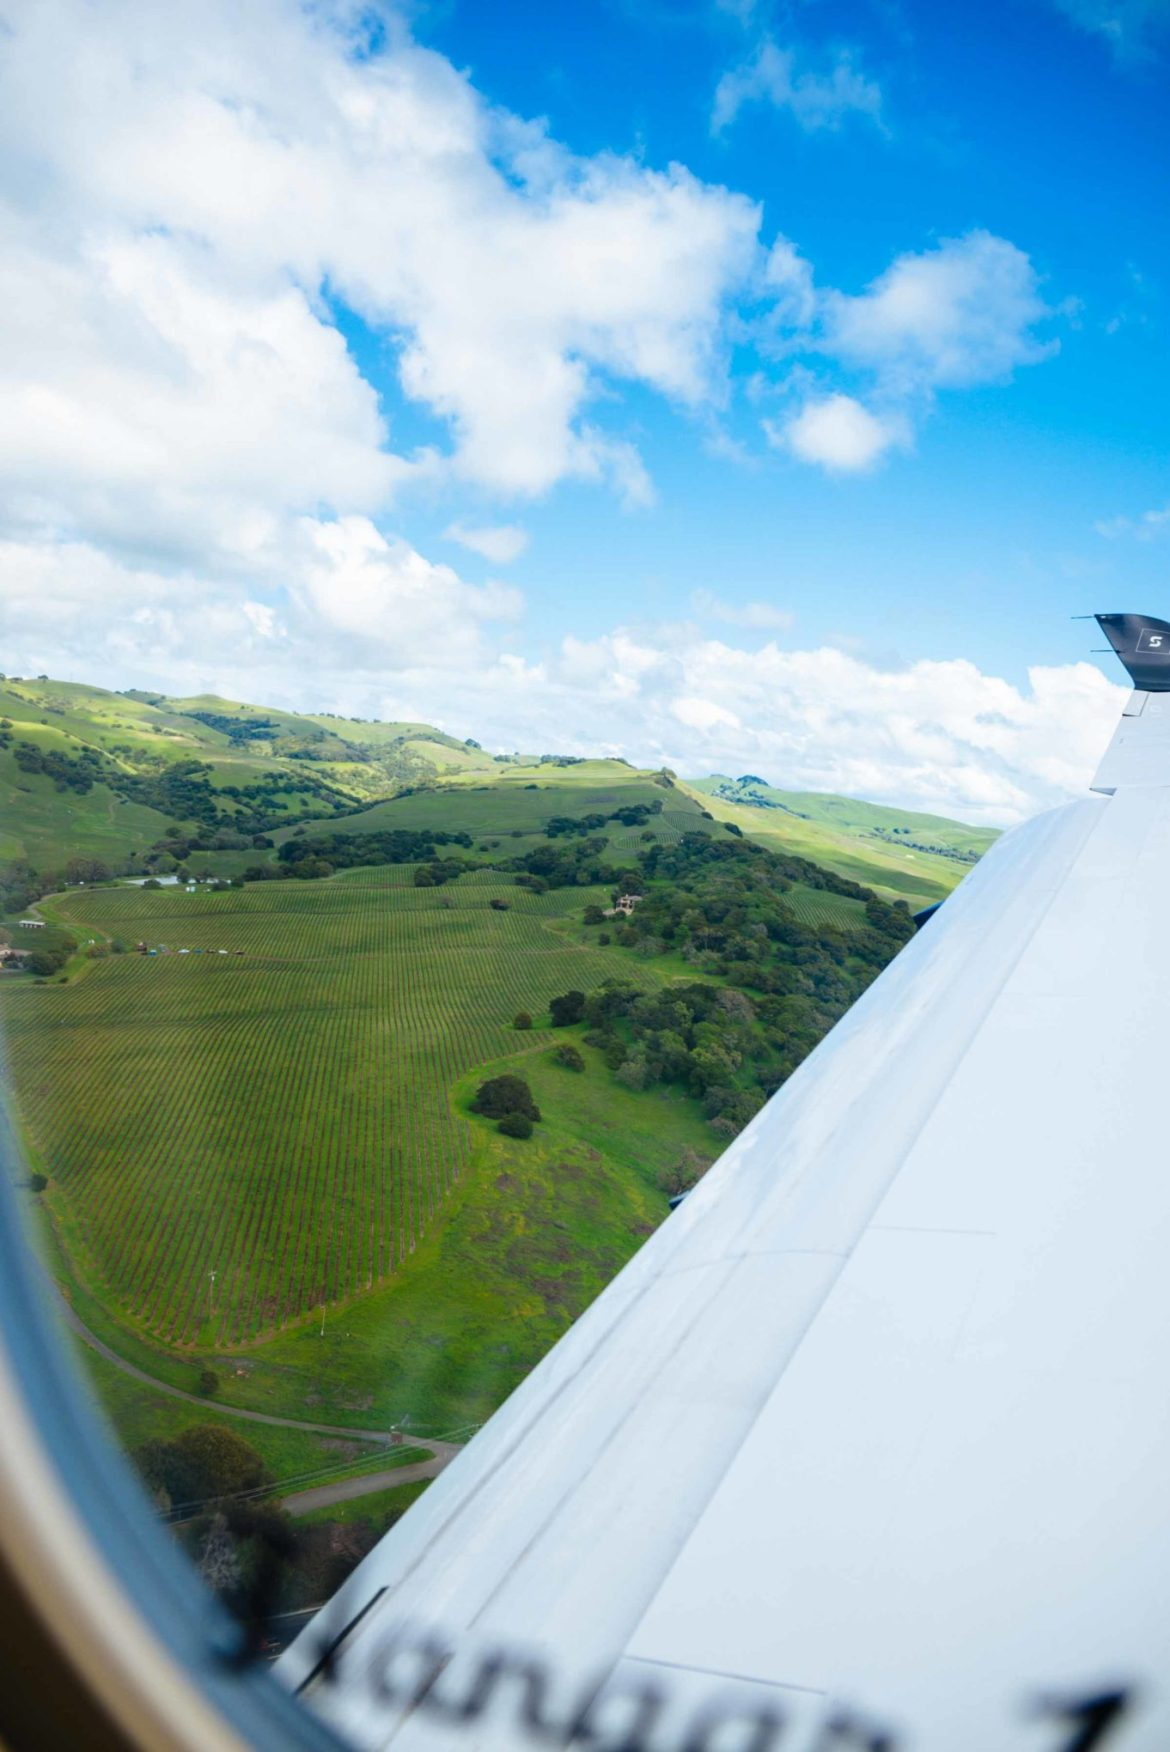 The Taste Edit takes in the view of Napa Valley vineyards from the Surf Air plane ride